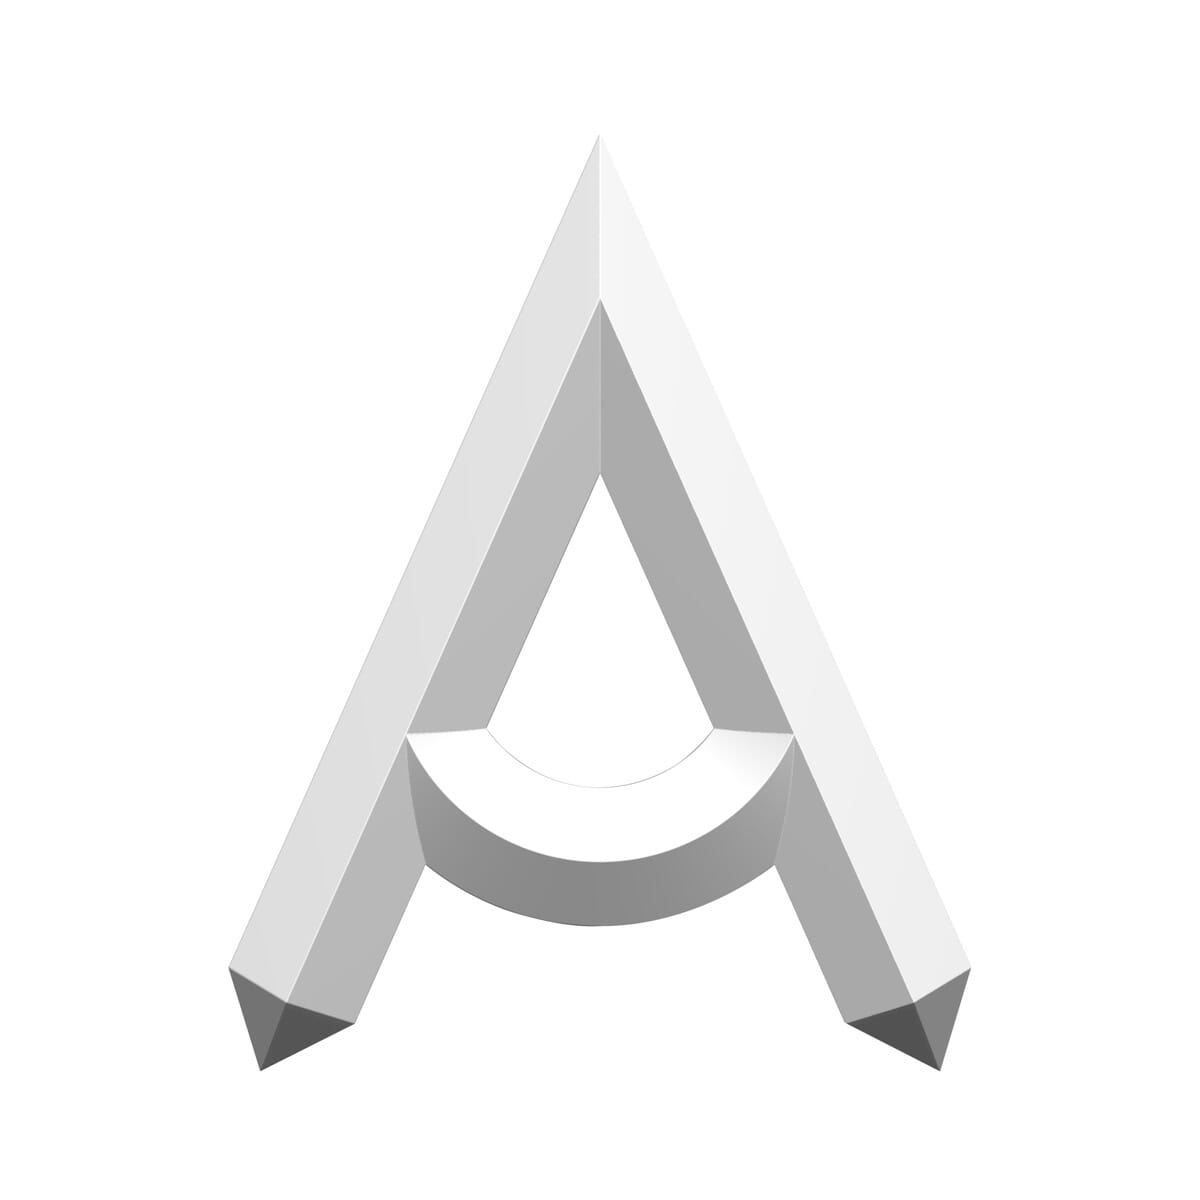 M6 x 6.00mm Cup Point Set / Grub Screws (DIN 916) - Black A4 Stainless Steel